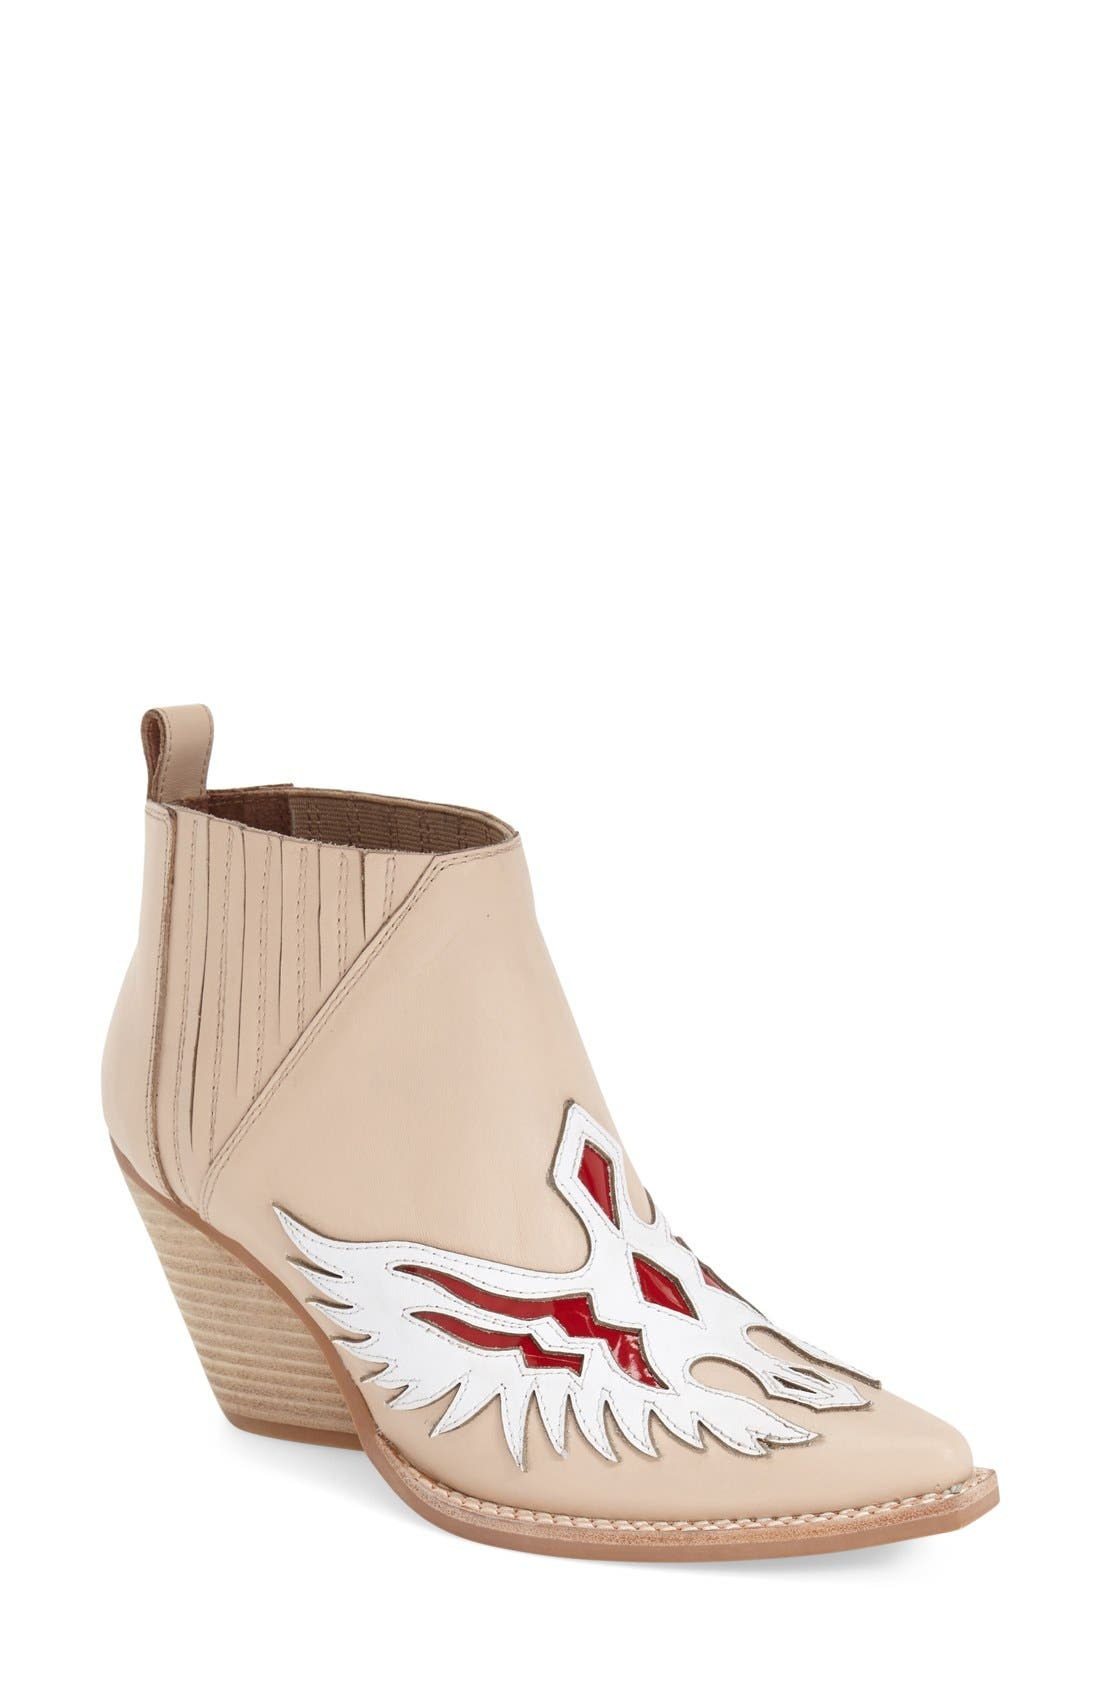 Main Image - Jeffrey Campbell 'Fawkes' Bootie (Women)